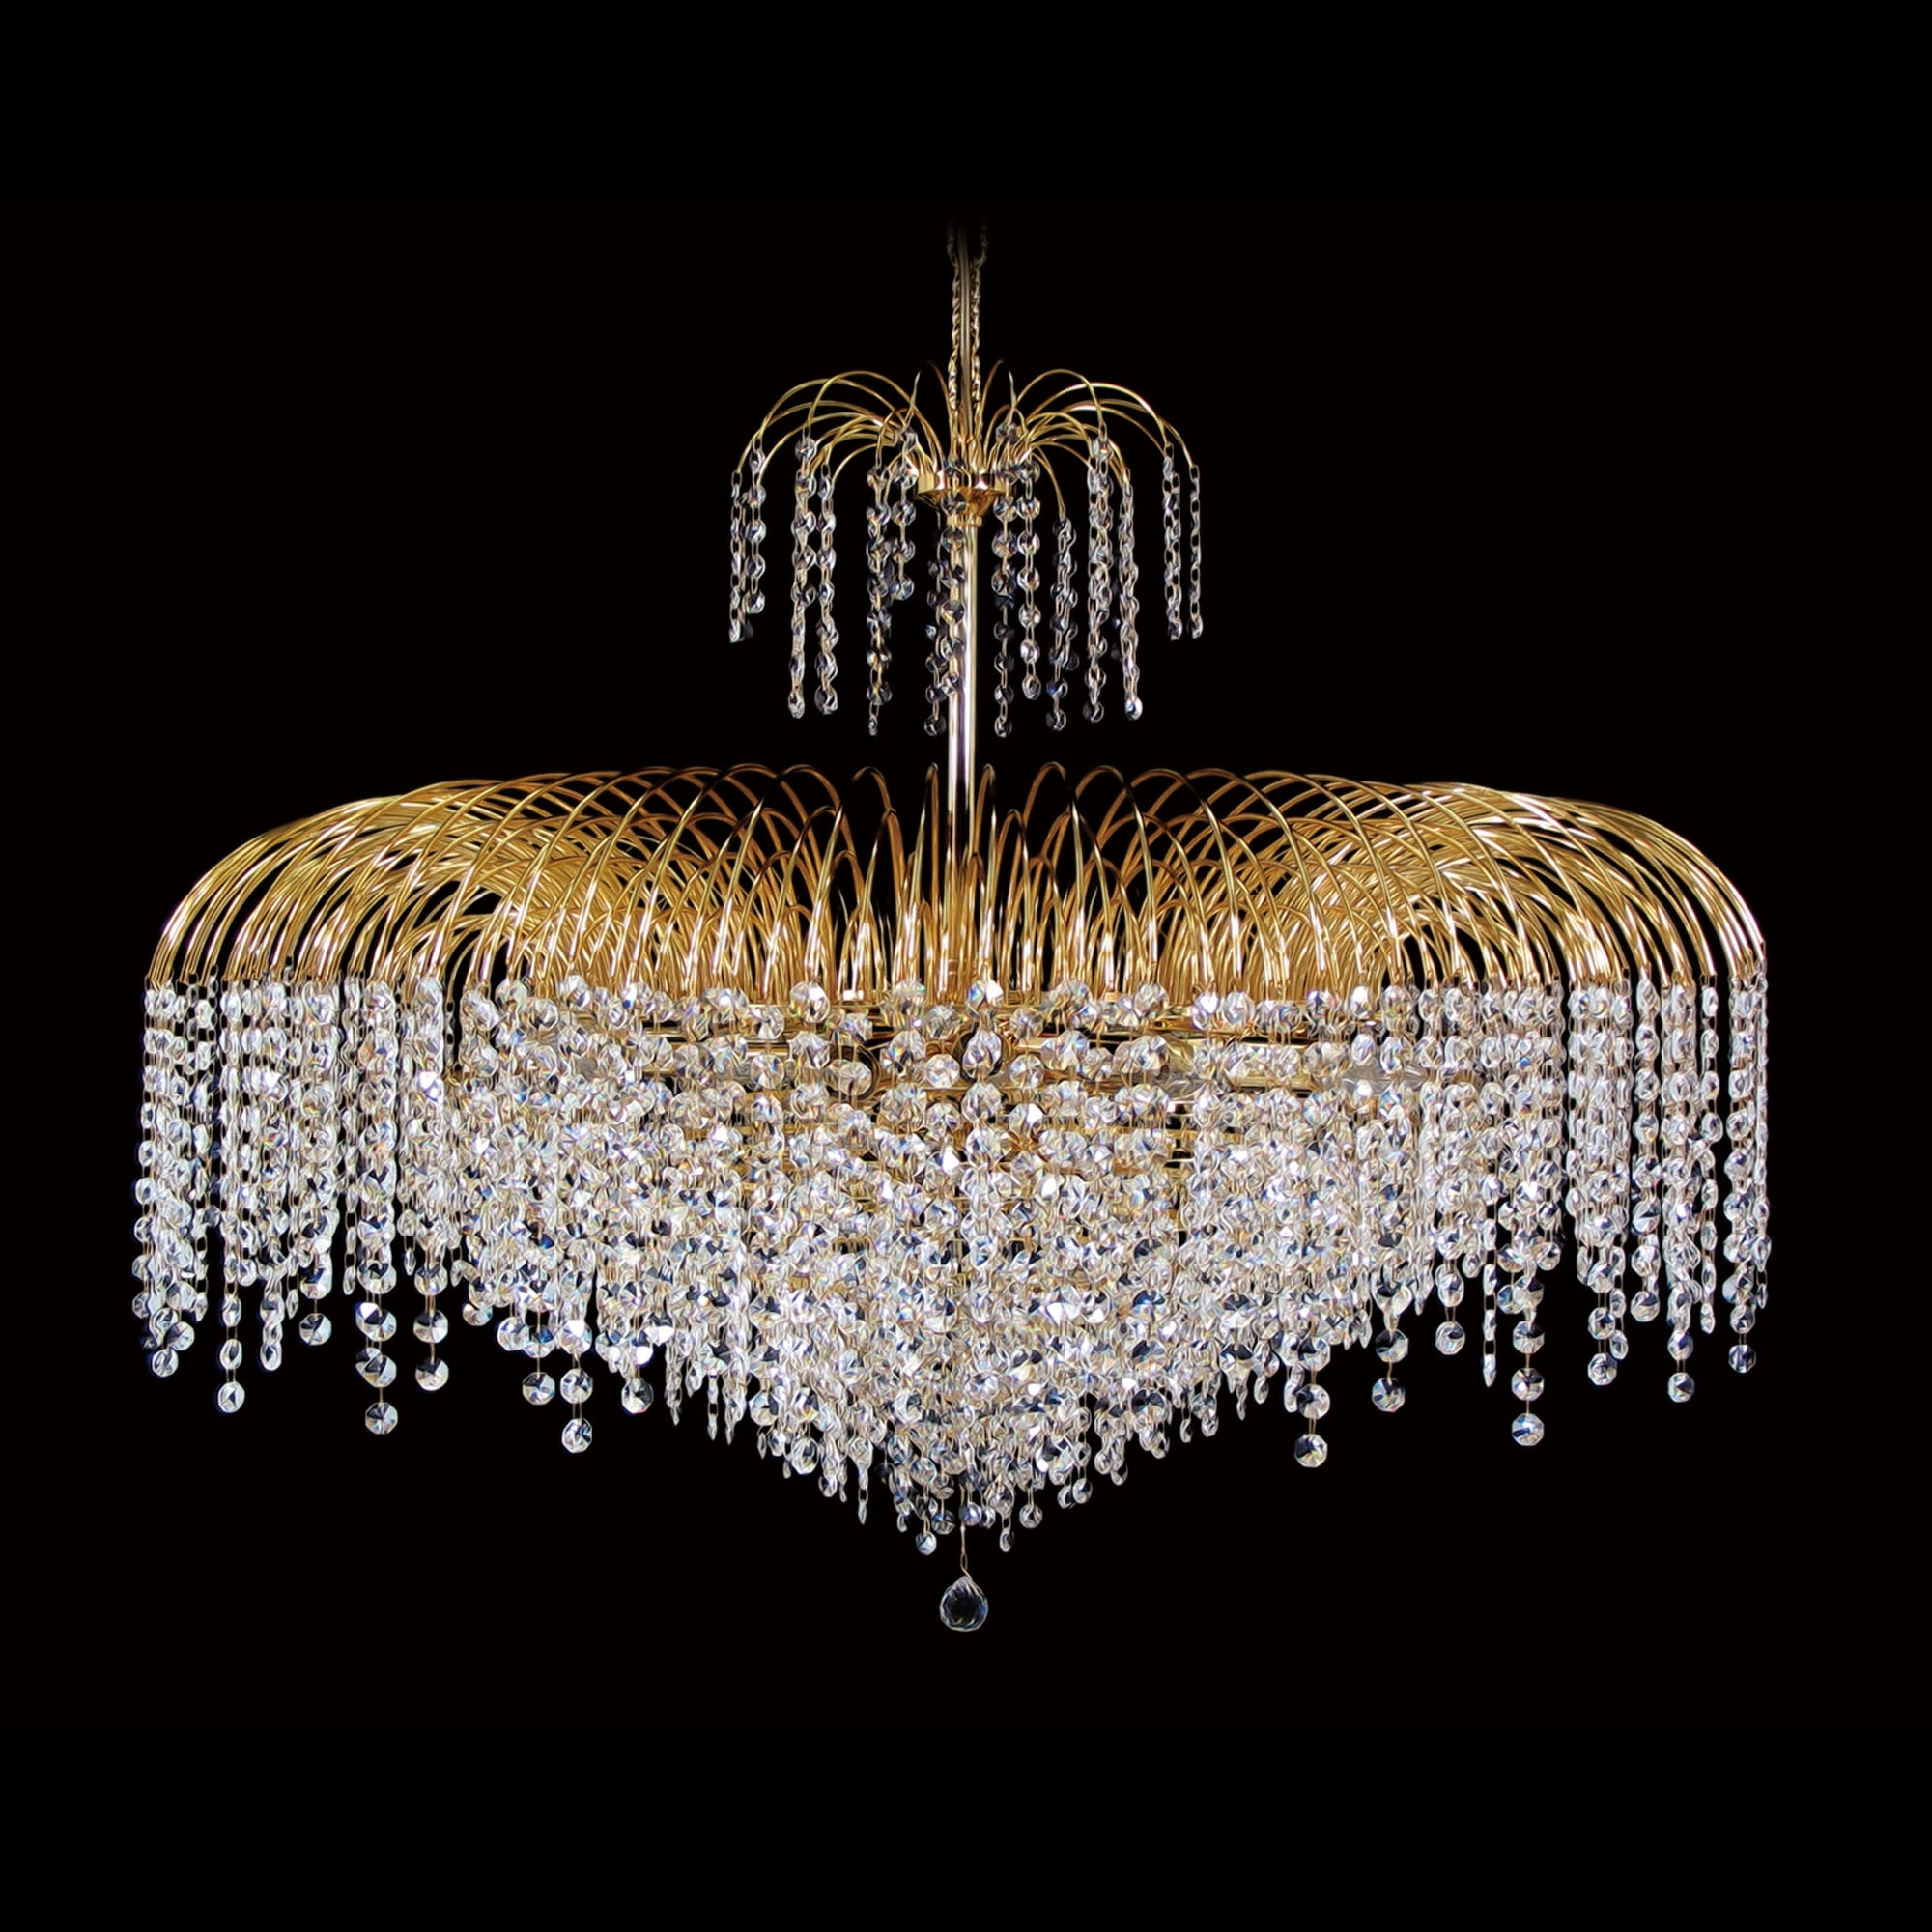 "15 Light – 32"" Asfour Lead Crystal 24Ct Gold Plated Waterfall Pertaining To Most Recent Lead Crystal Chandelier (Gallery 8 of 15)"